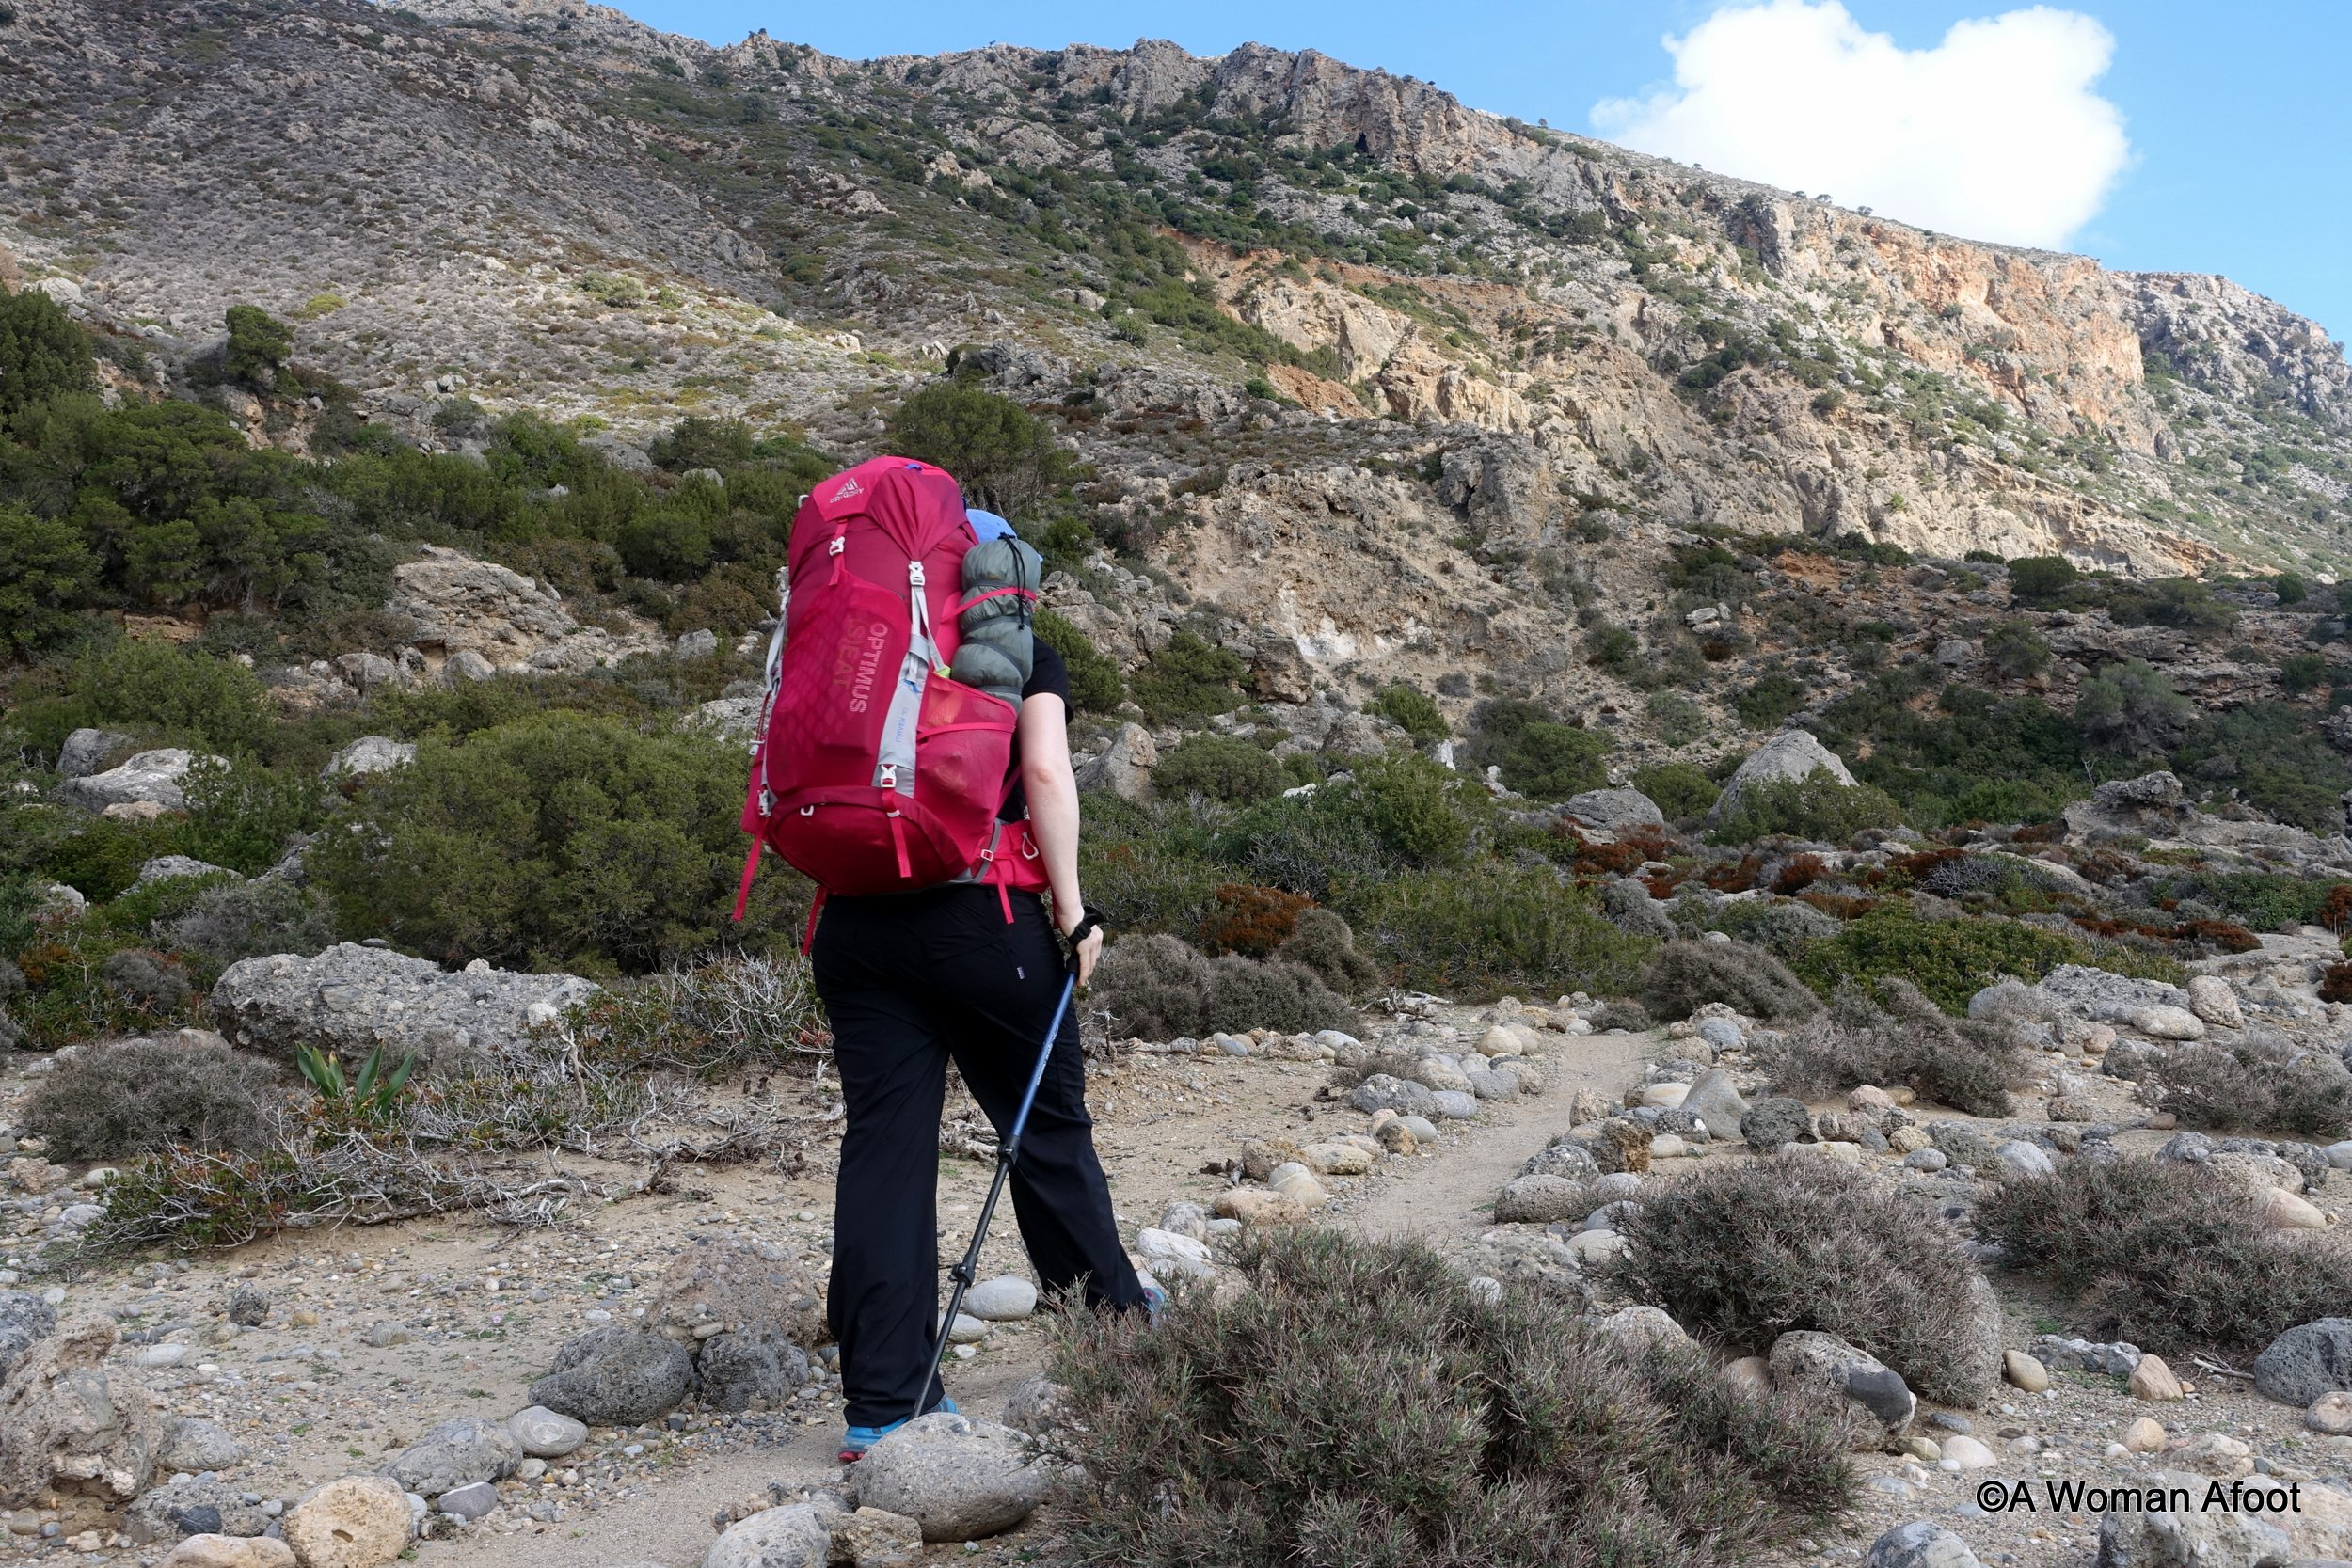 How to pack your hiking backpack to ensure comfort and safety. Learn all you need about packing your load to ensure your comfort @ awomanafoot.com | #hiking | #backpacking | #camping | #hikingtips | backpack packing | #hiking101 | hiking tips | #HikingAdvice